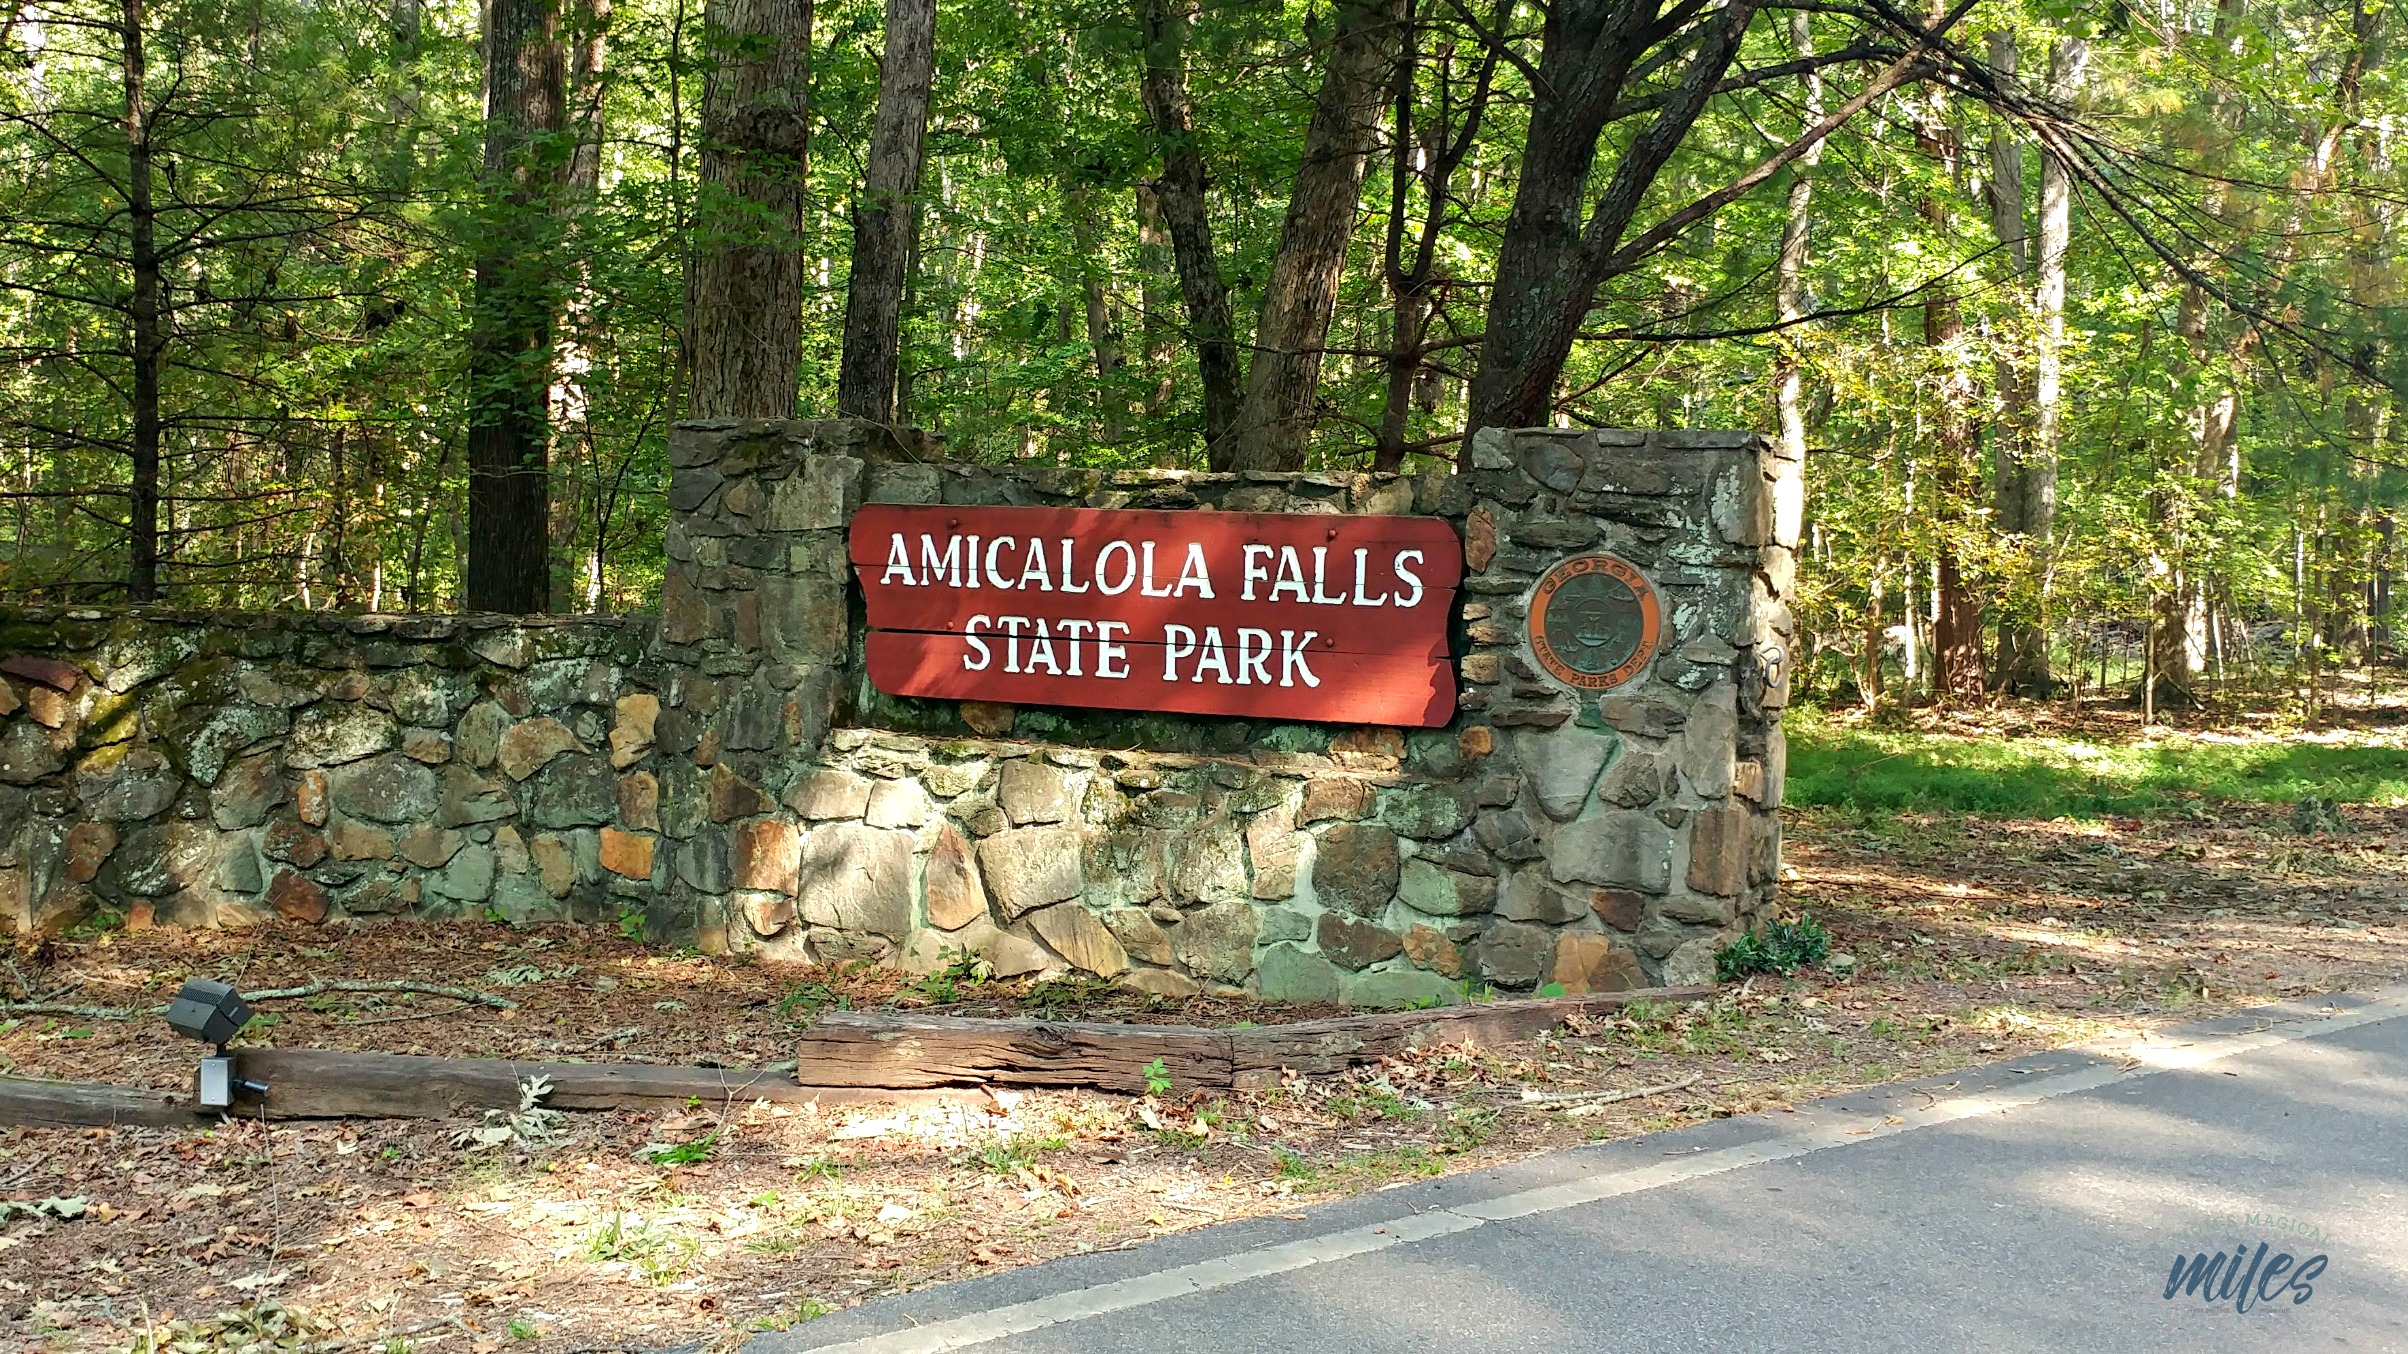 Amicalola Falls State Park just added a second level to their zip line experience!